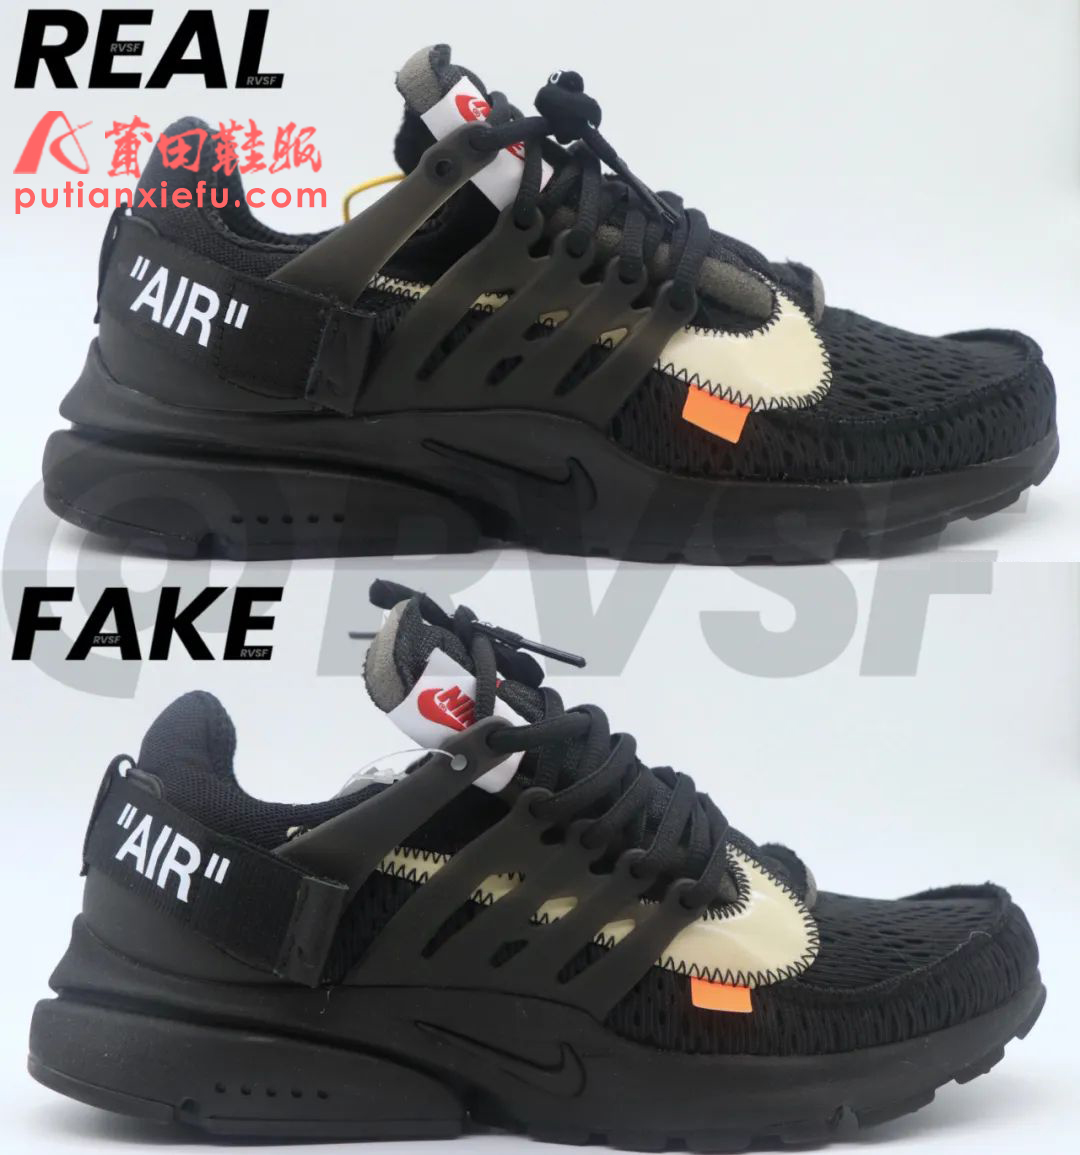 Off-White x Nike Air Presto 2.0 THE TEN  耐克王 真假对比